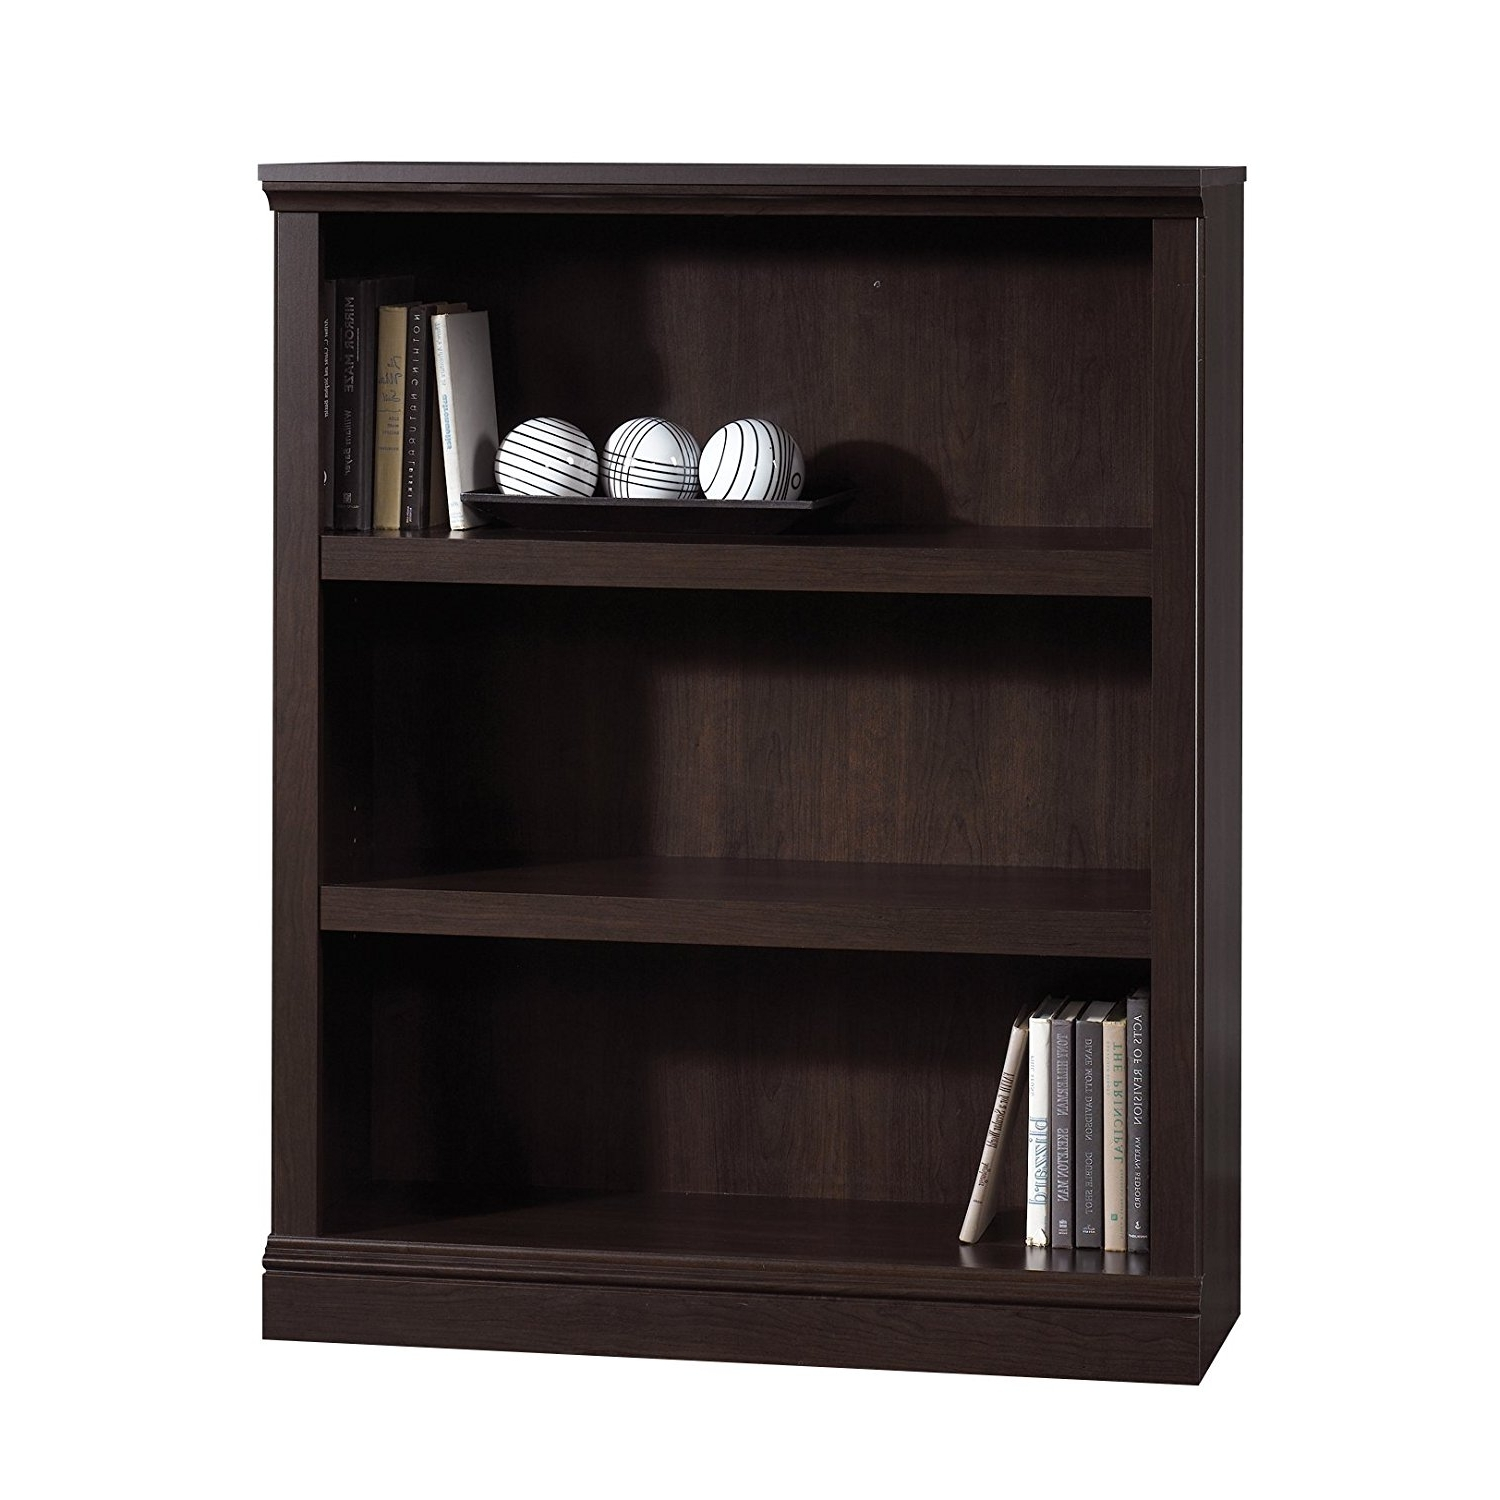 Most Recent Room Essentials 3 Shelf Bookcases With Regard To Room Essentials Shelf Bookcase Instructions3 Wood In Black Wooden (View 11 of 15)